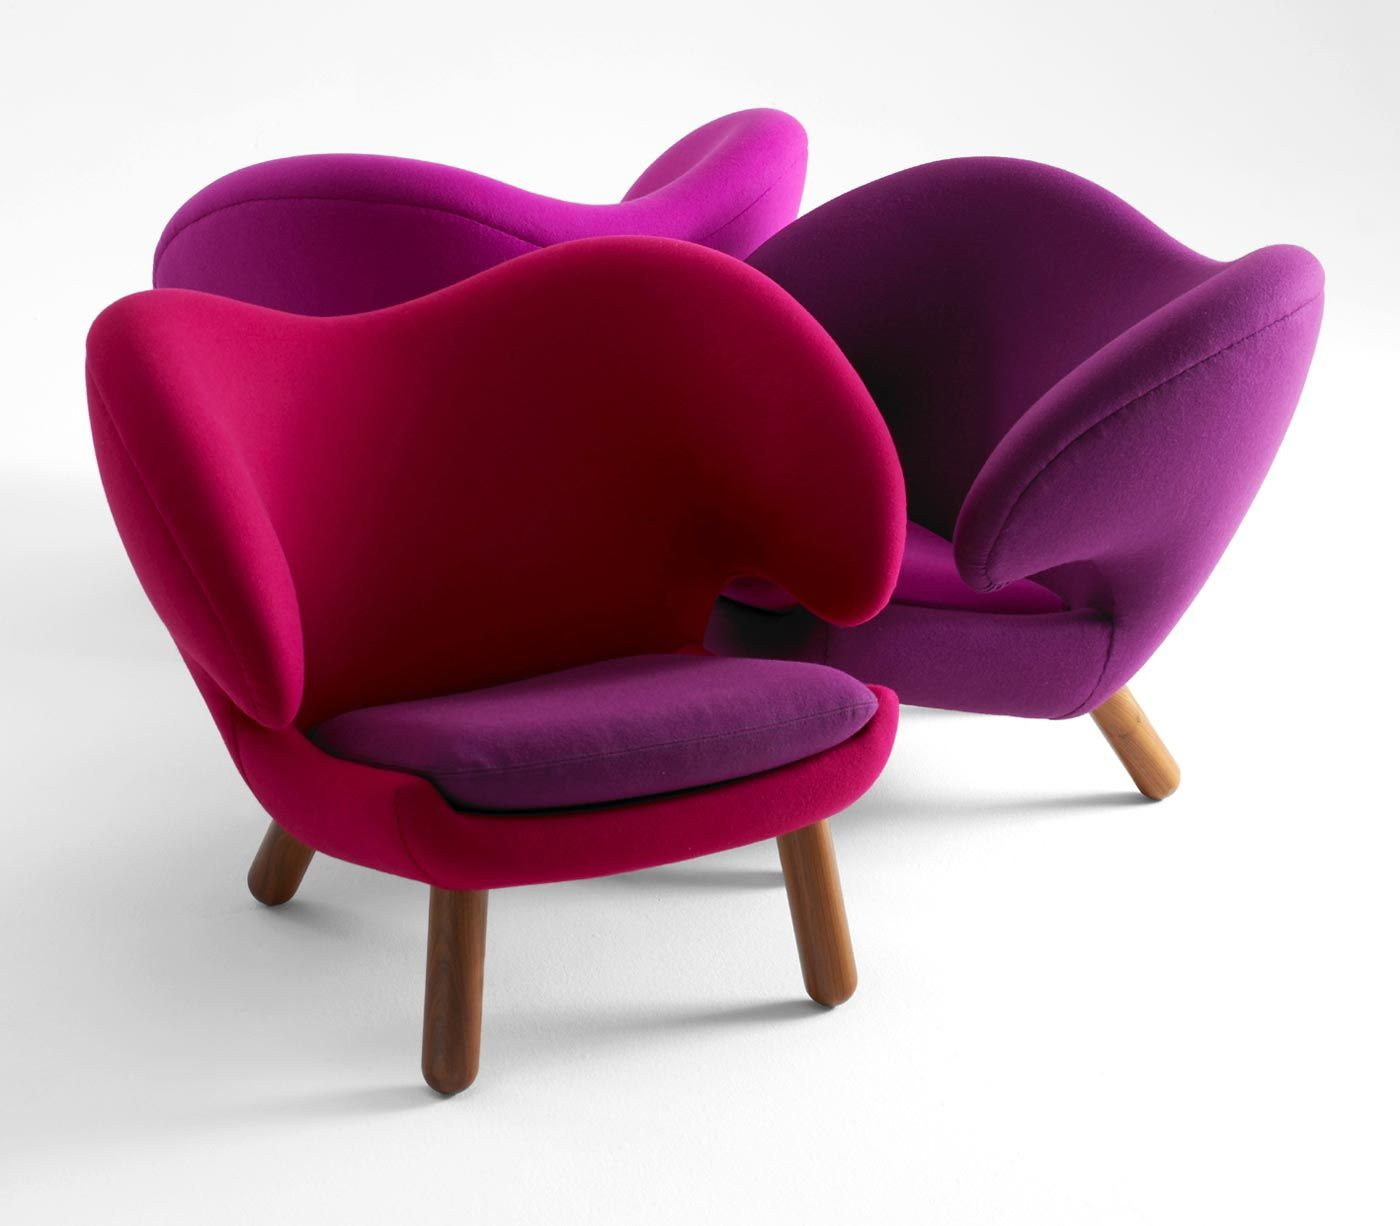 Modern Chair Design For Indoor Furniture By One CollectionFor